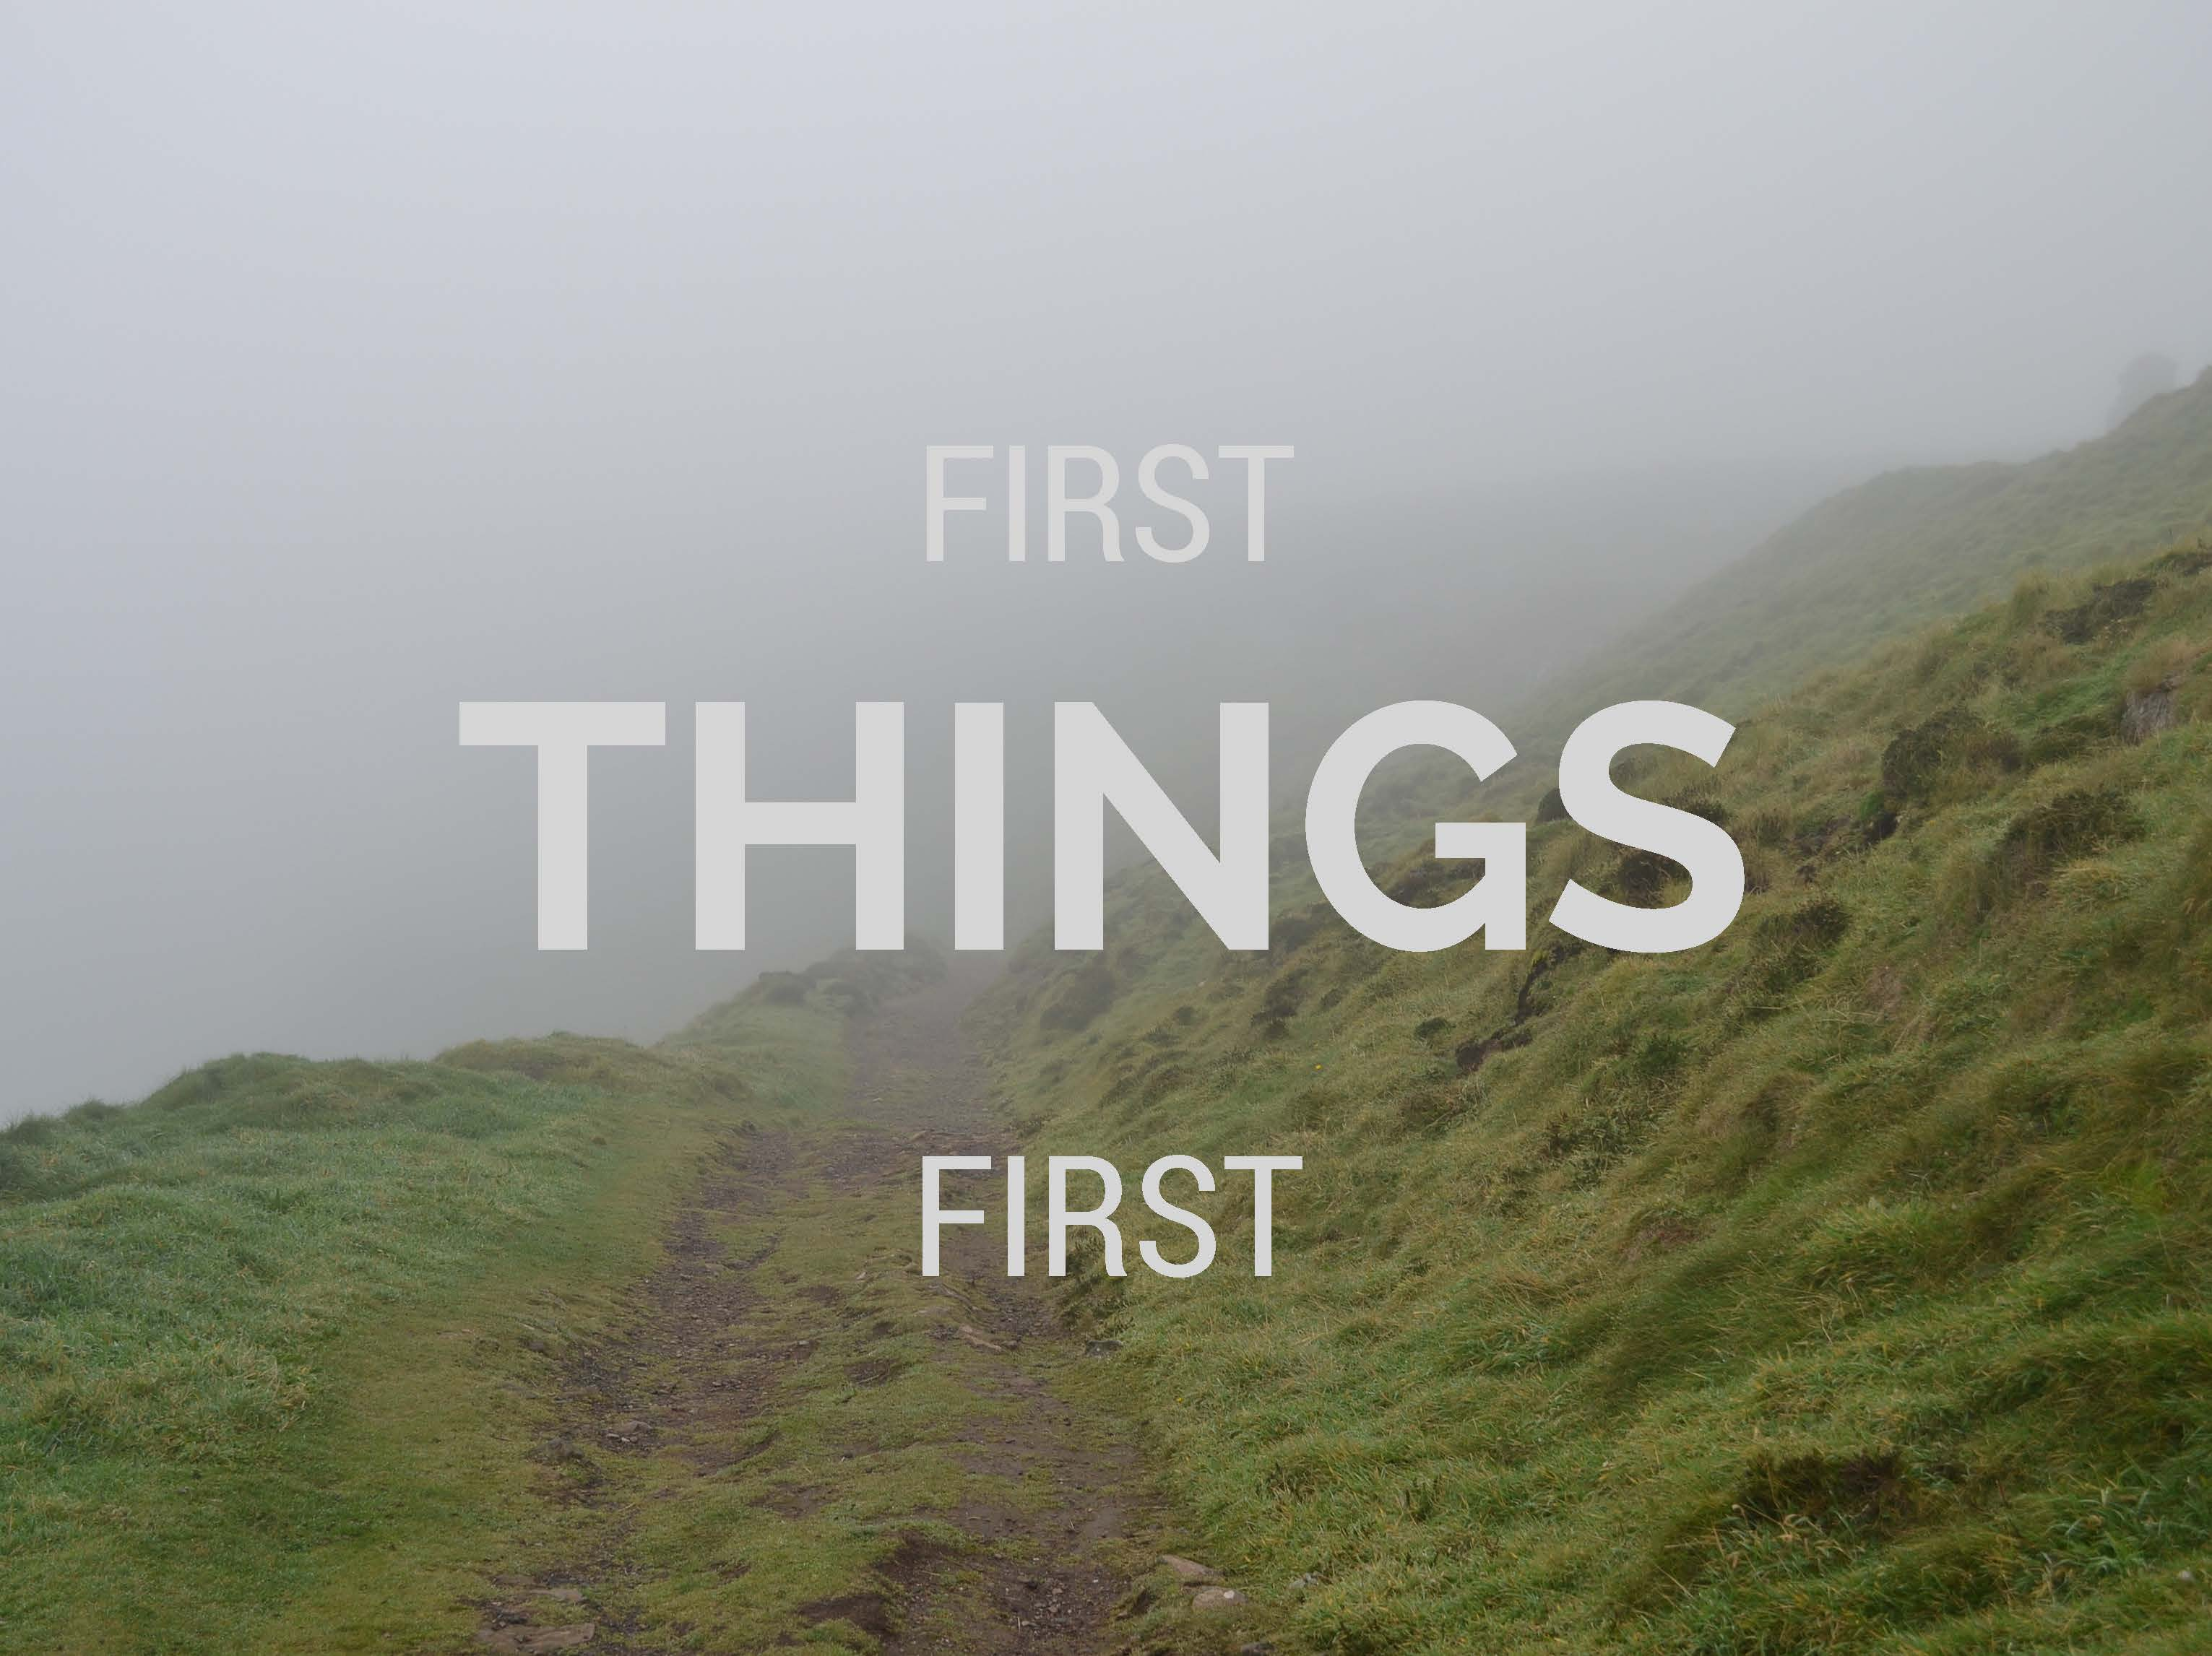 First Things First (part 2)